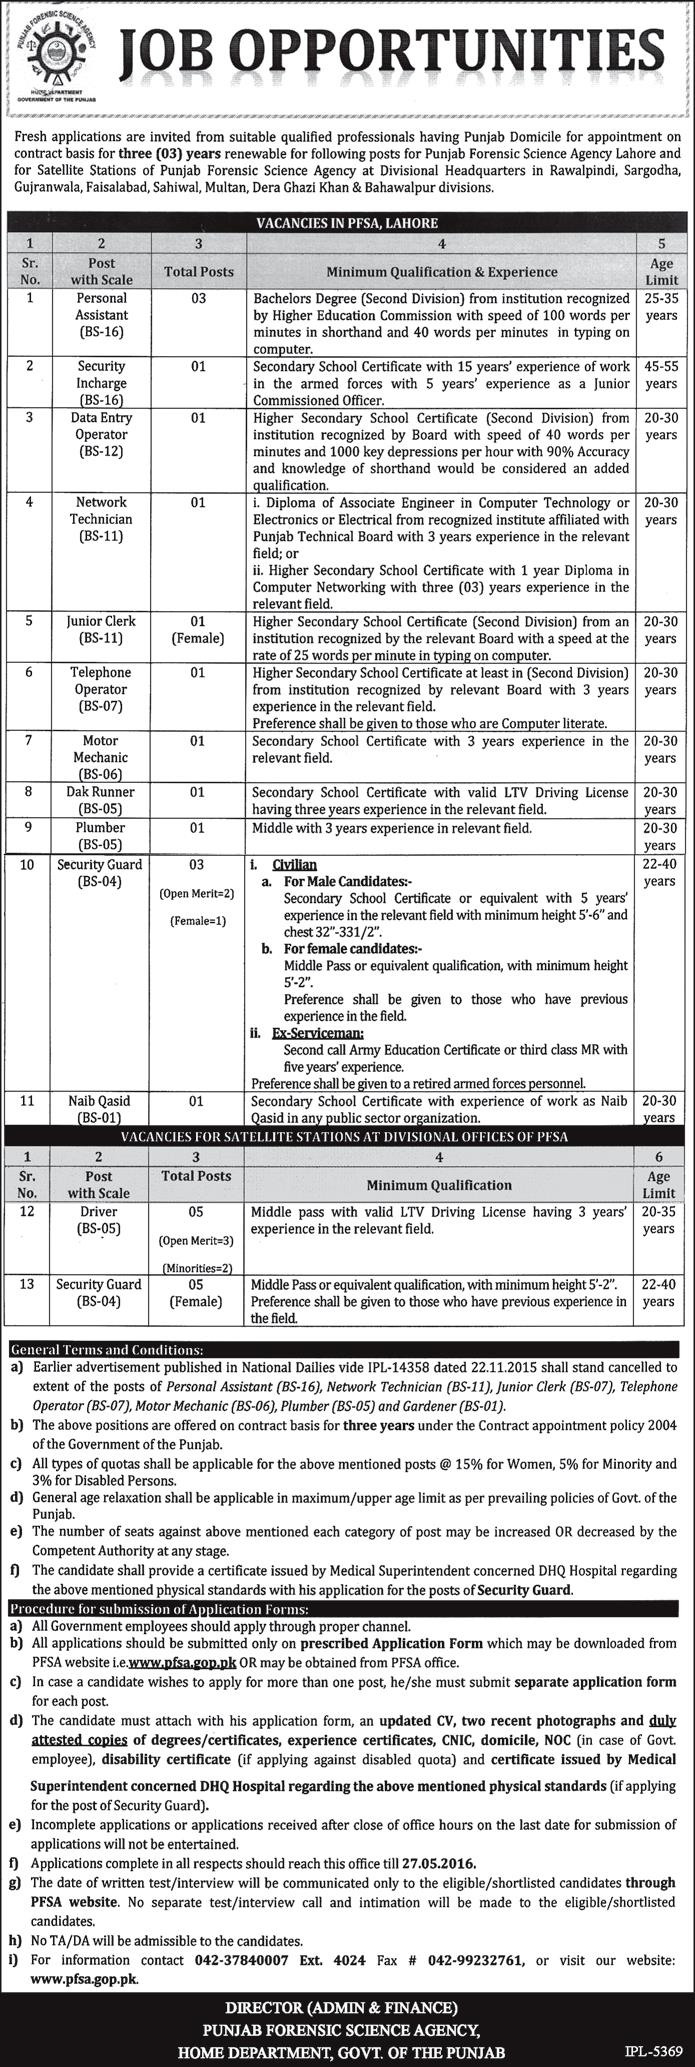 Punjab Forensic Science Agency PFSA Jobs 2016 NTS Form Test Date Result